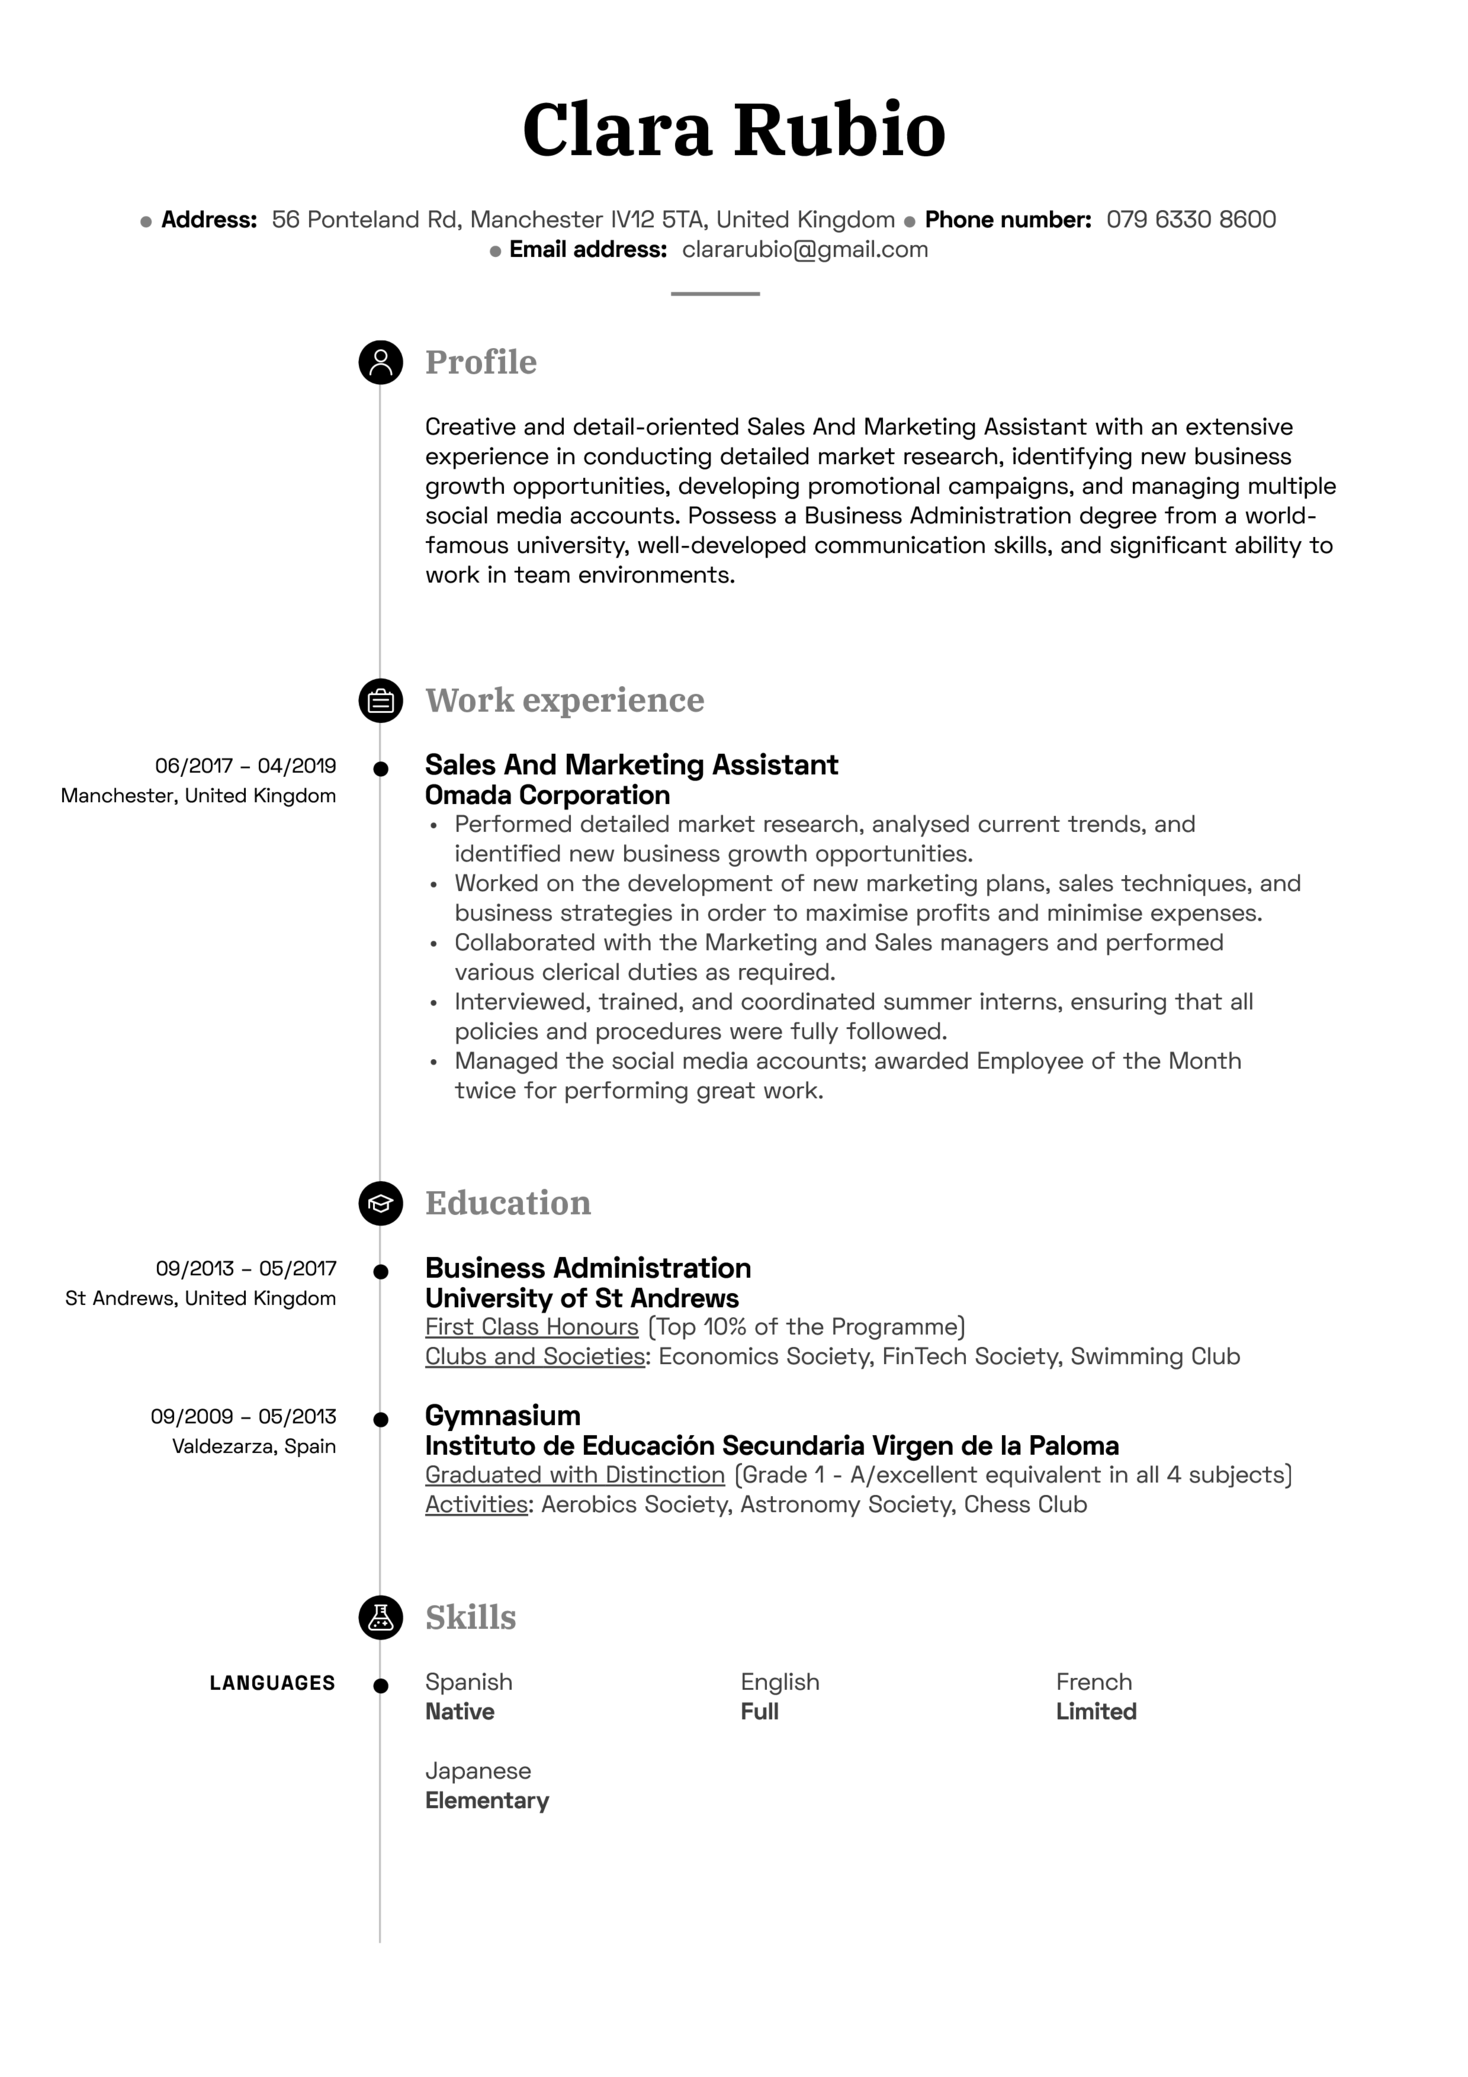 Sales And Marketing Assistant Resume Sample (parte 1)